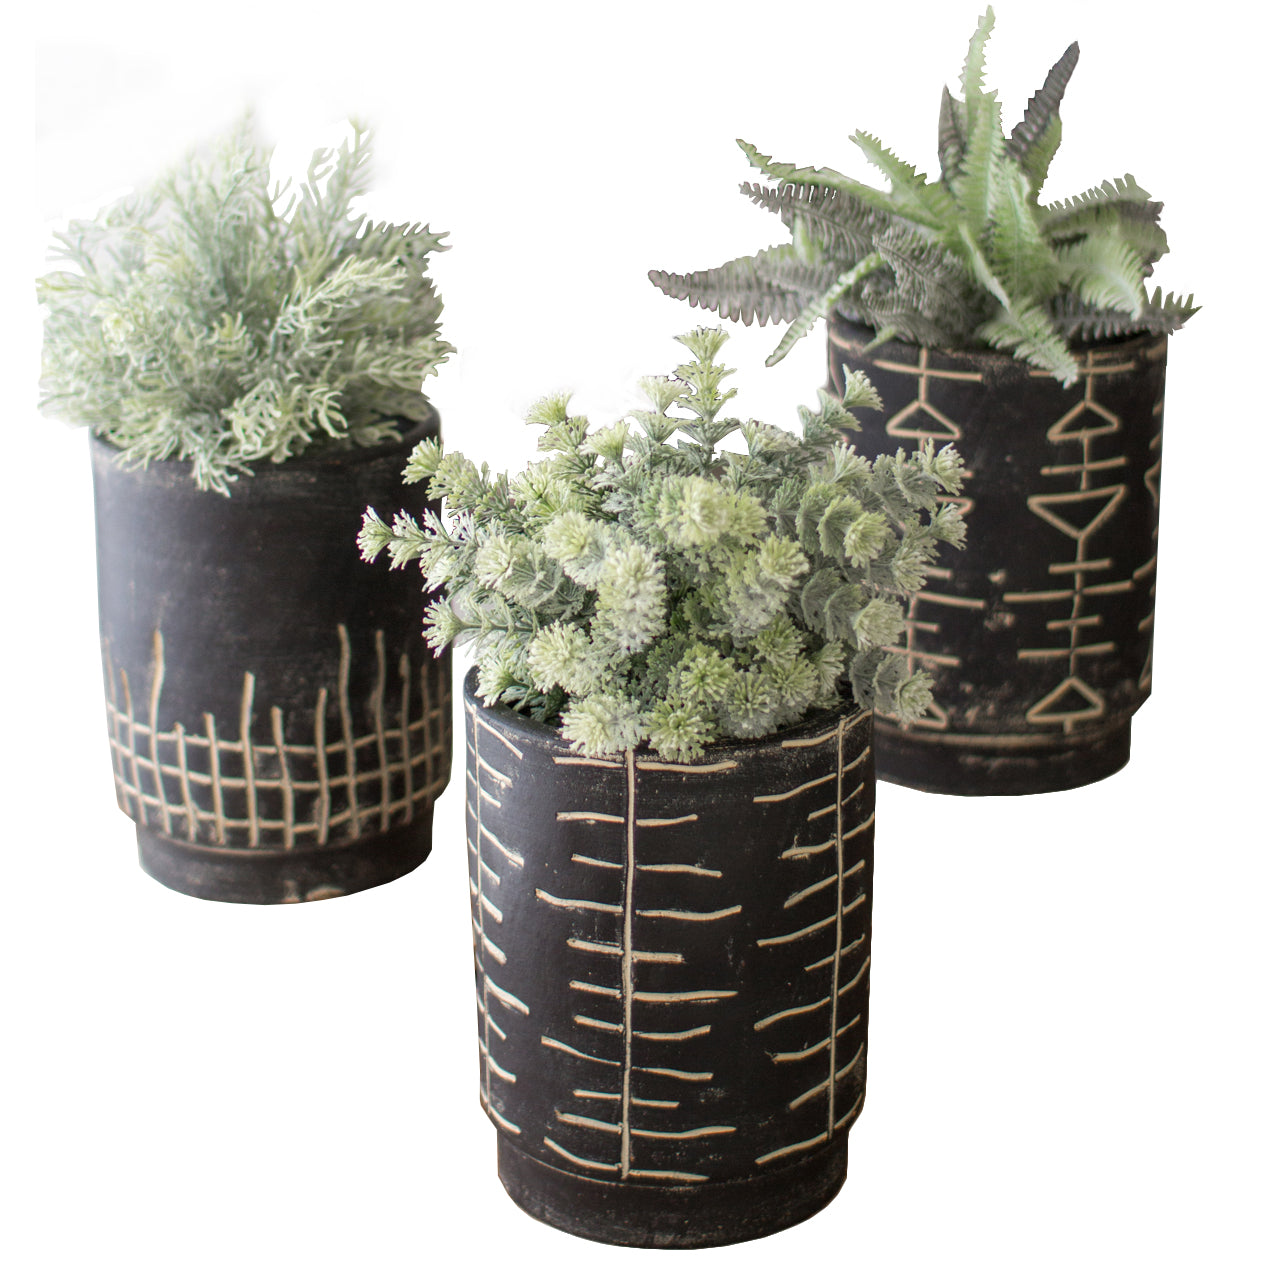 planter blomus amazing savings shopping clay black in planta brown set of shop planters